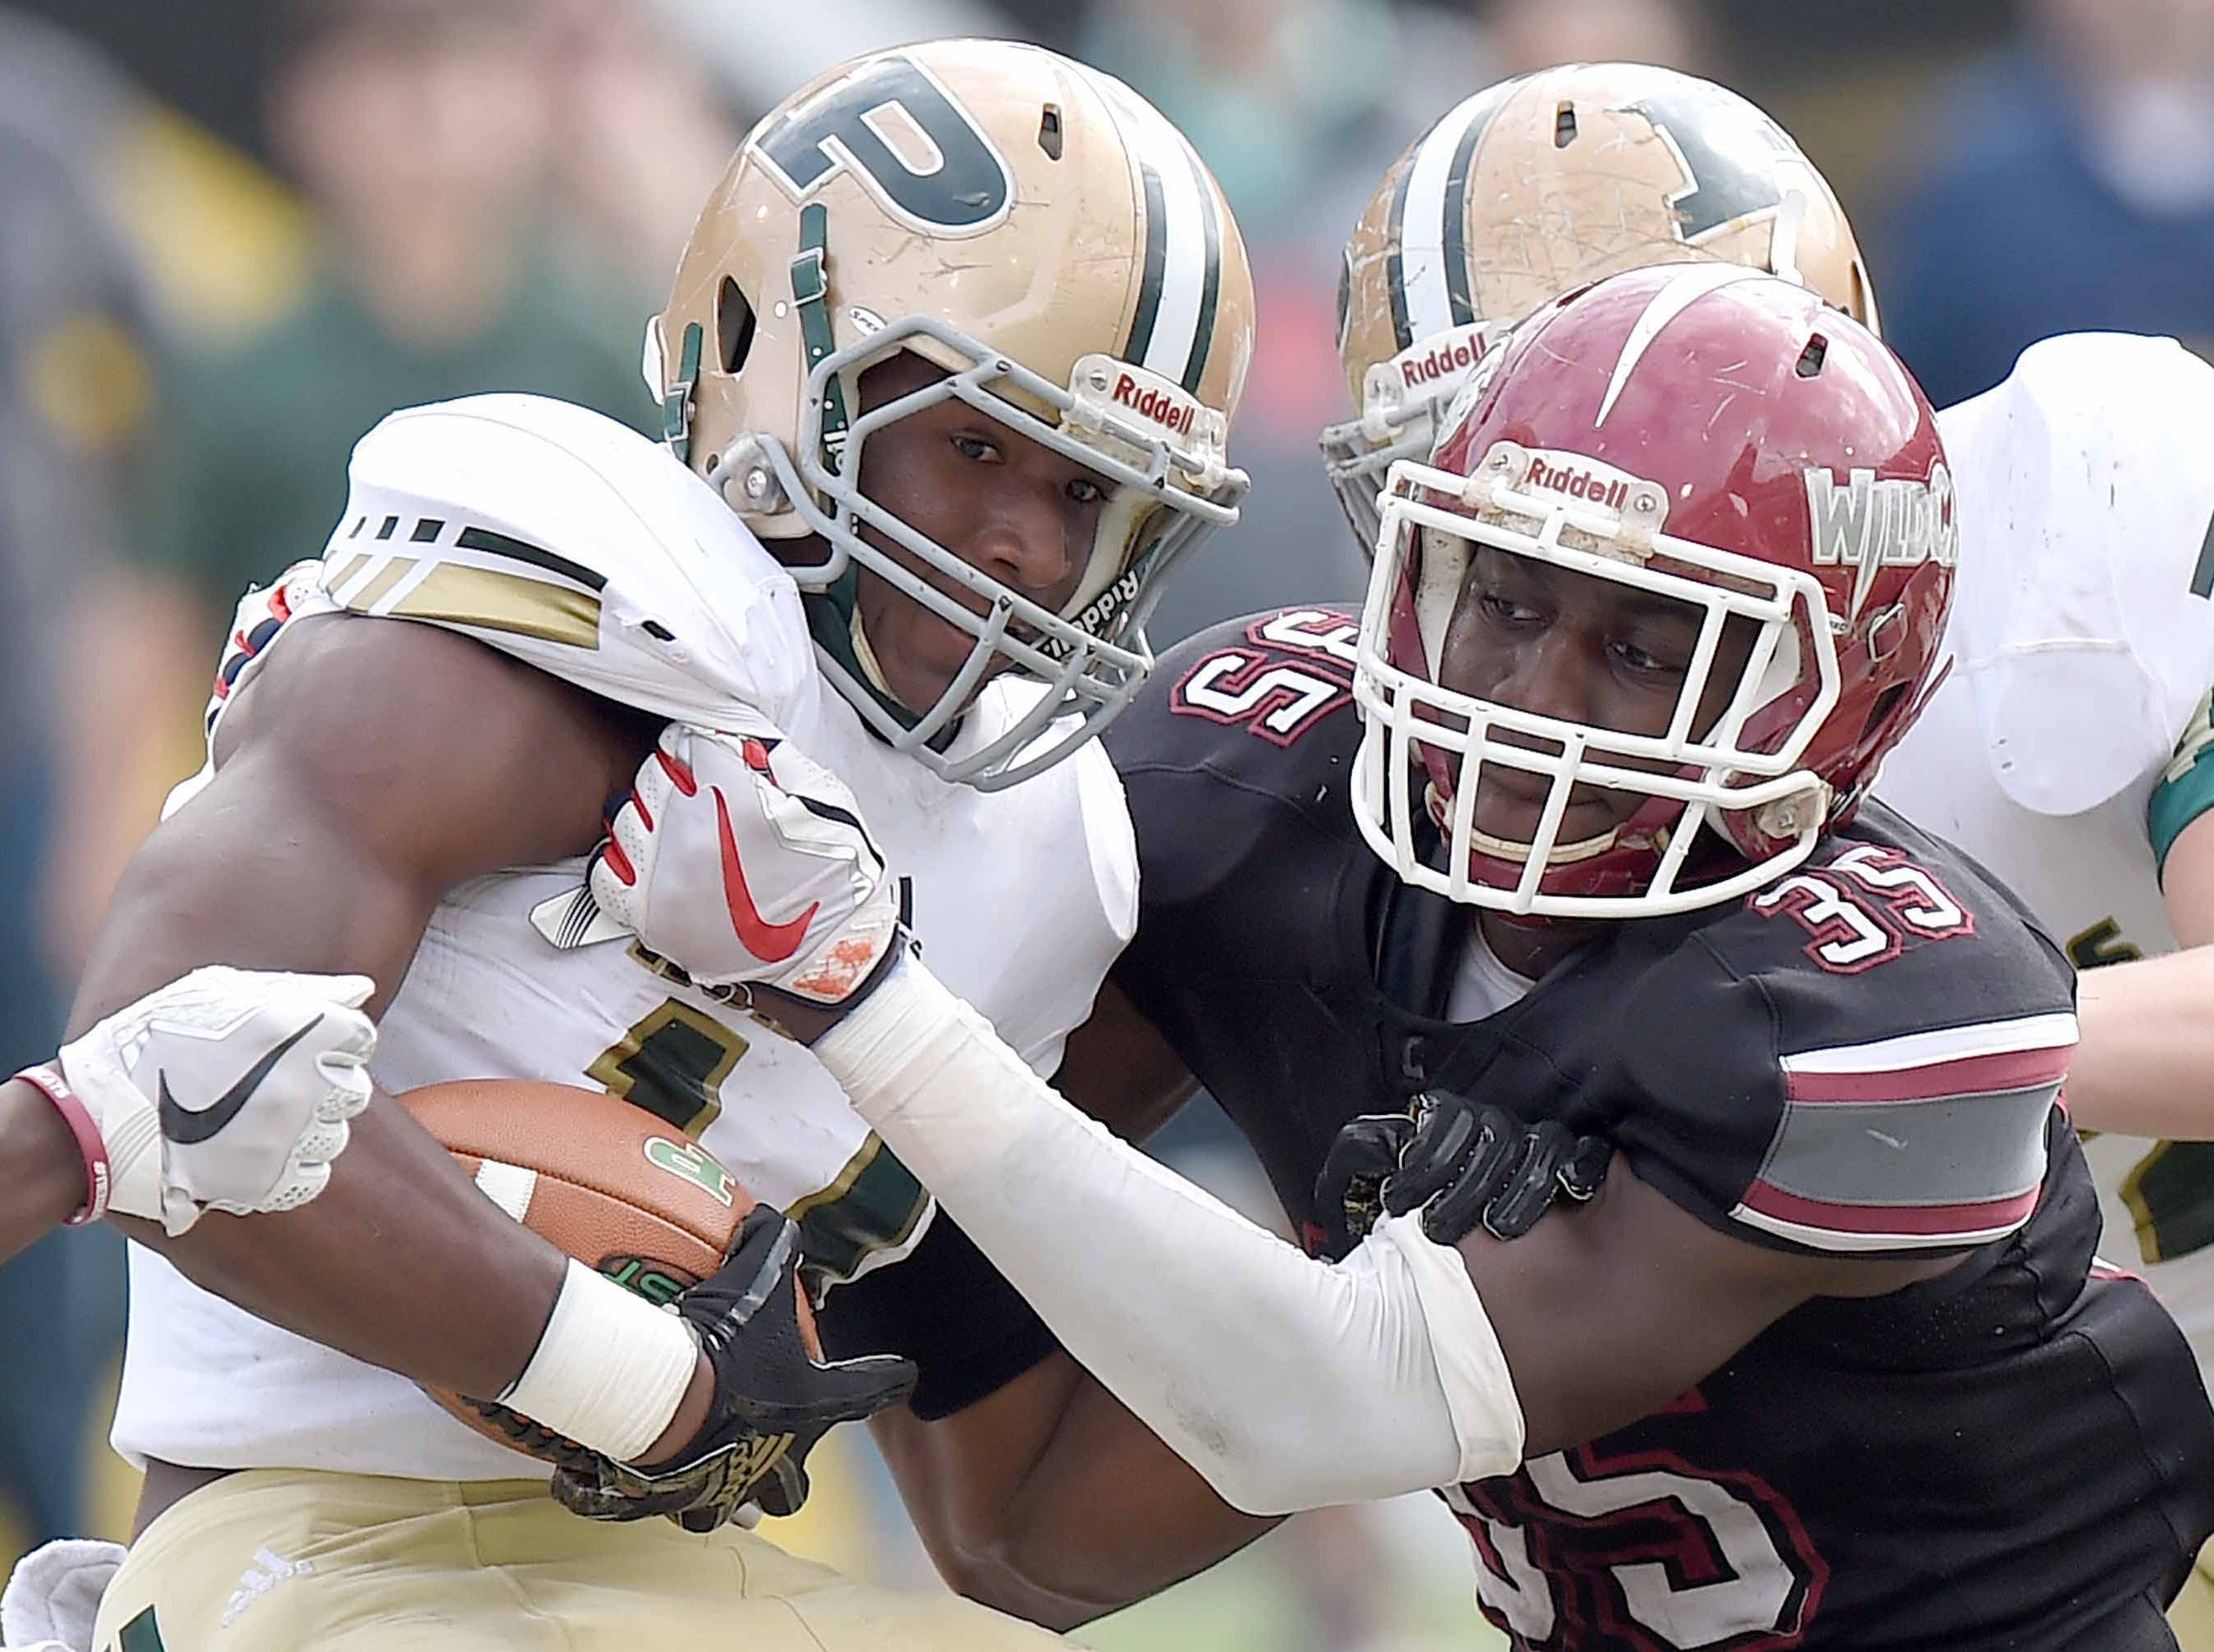 Louisville's Ashanti Cistrunk (35) tackles Poplarville's Chase Shears on Saturday, December 1, 2018, in the MHSAA BlueCross BlueShield Gridiron Classic High School Football Championships in M.M. Roberts Stadium on the University of Southern Mississippi campus in Hattiesburg, Miss.